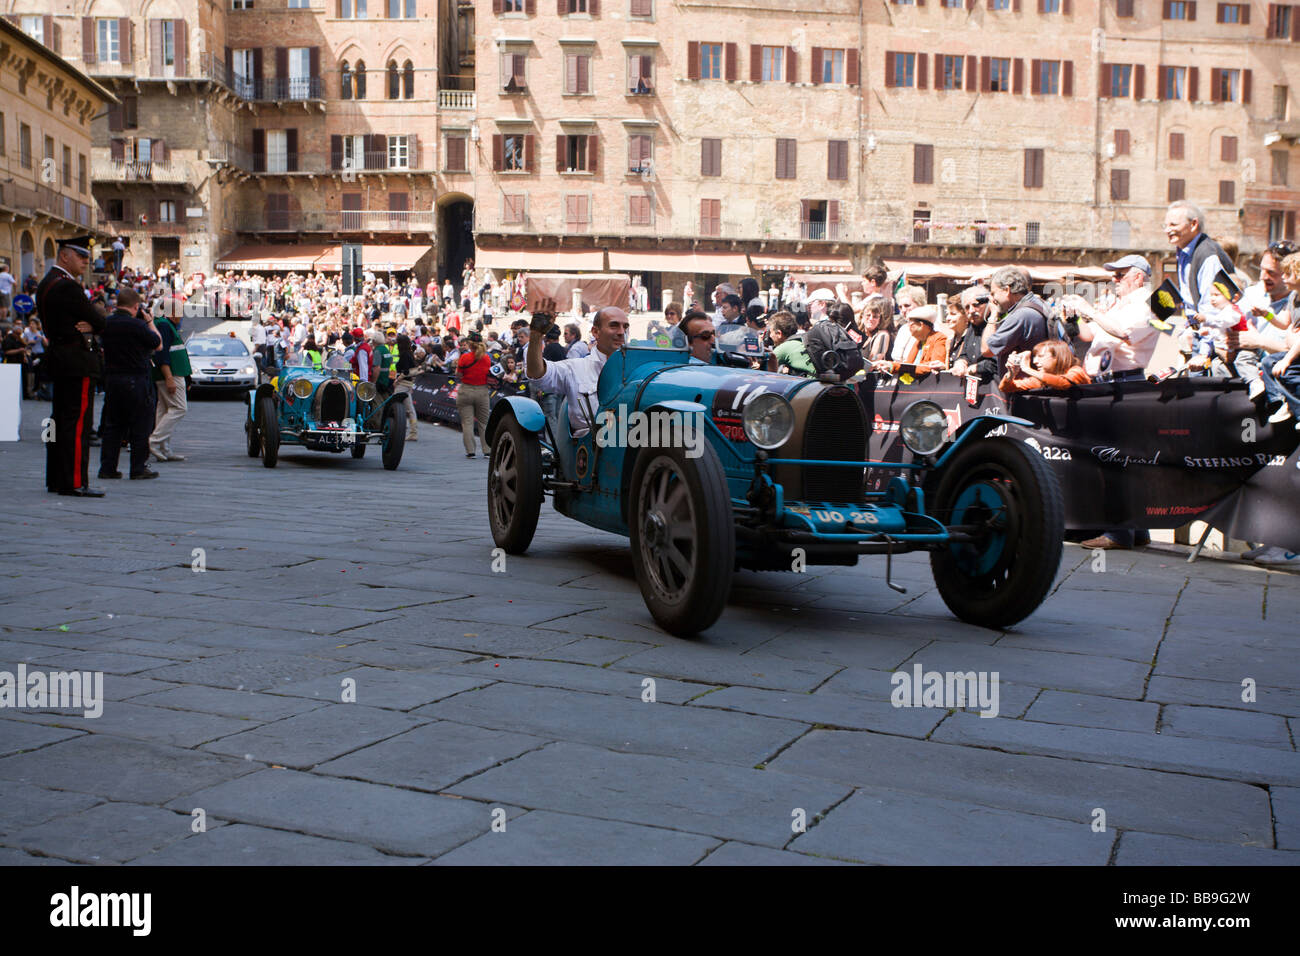 two vintage Bugatti cars arriving at Siena, Mille miglia rally 2009 - Stock Image